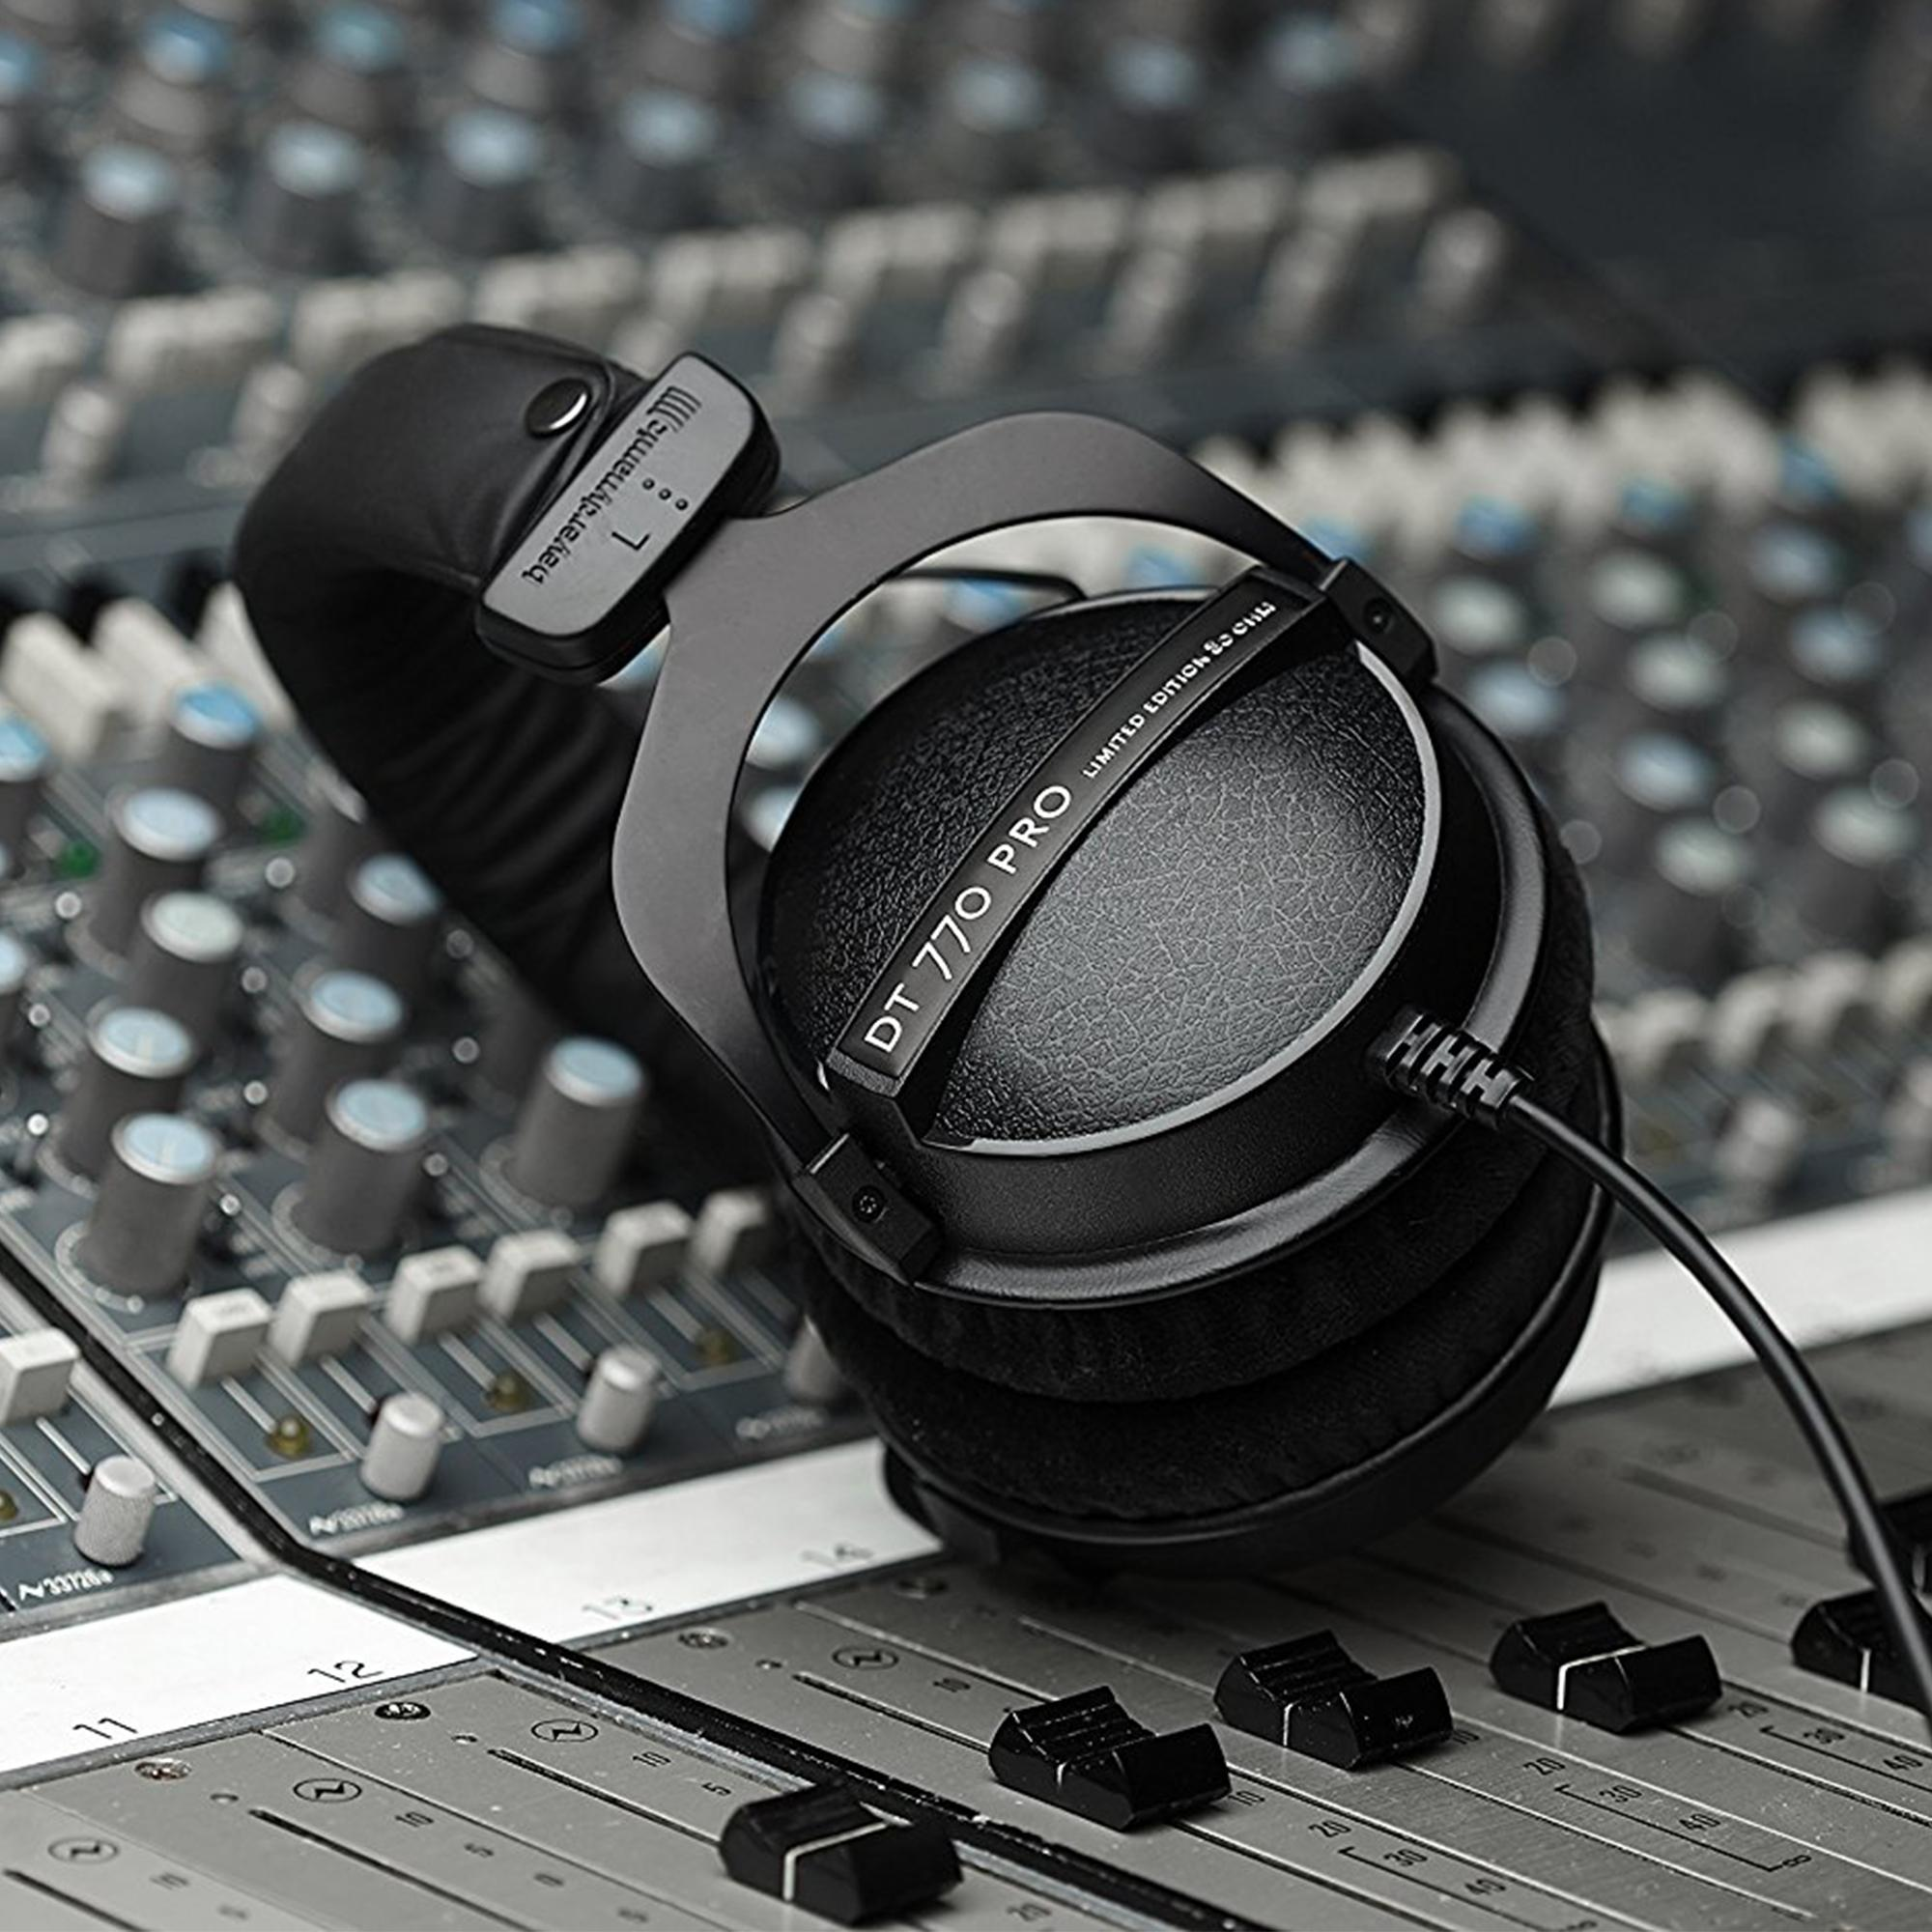 beyerdynamic dt 770 pro 80 ohm limited edition professional studio headphones. Black Bedroom Furniture Sets. Home Design Ideas